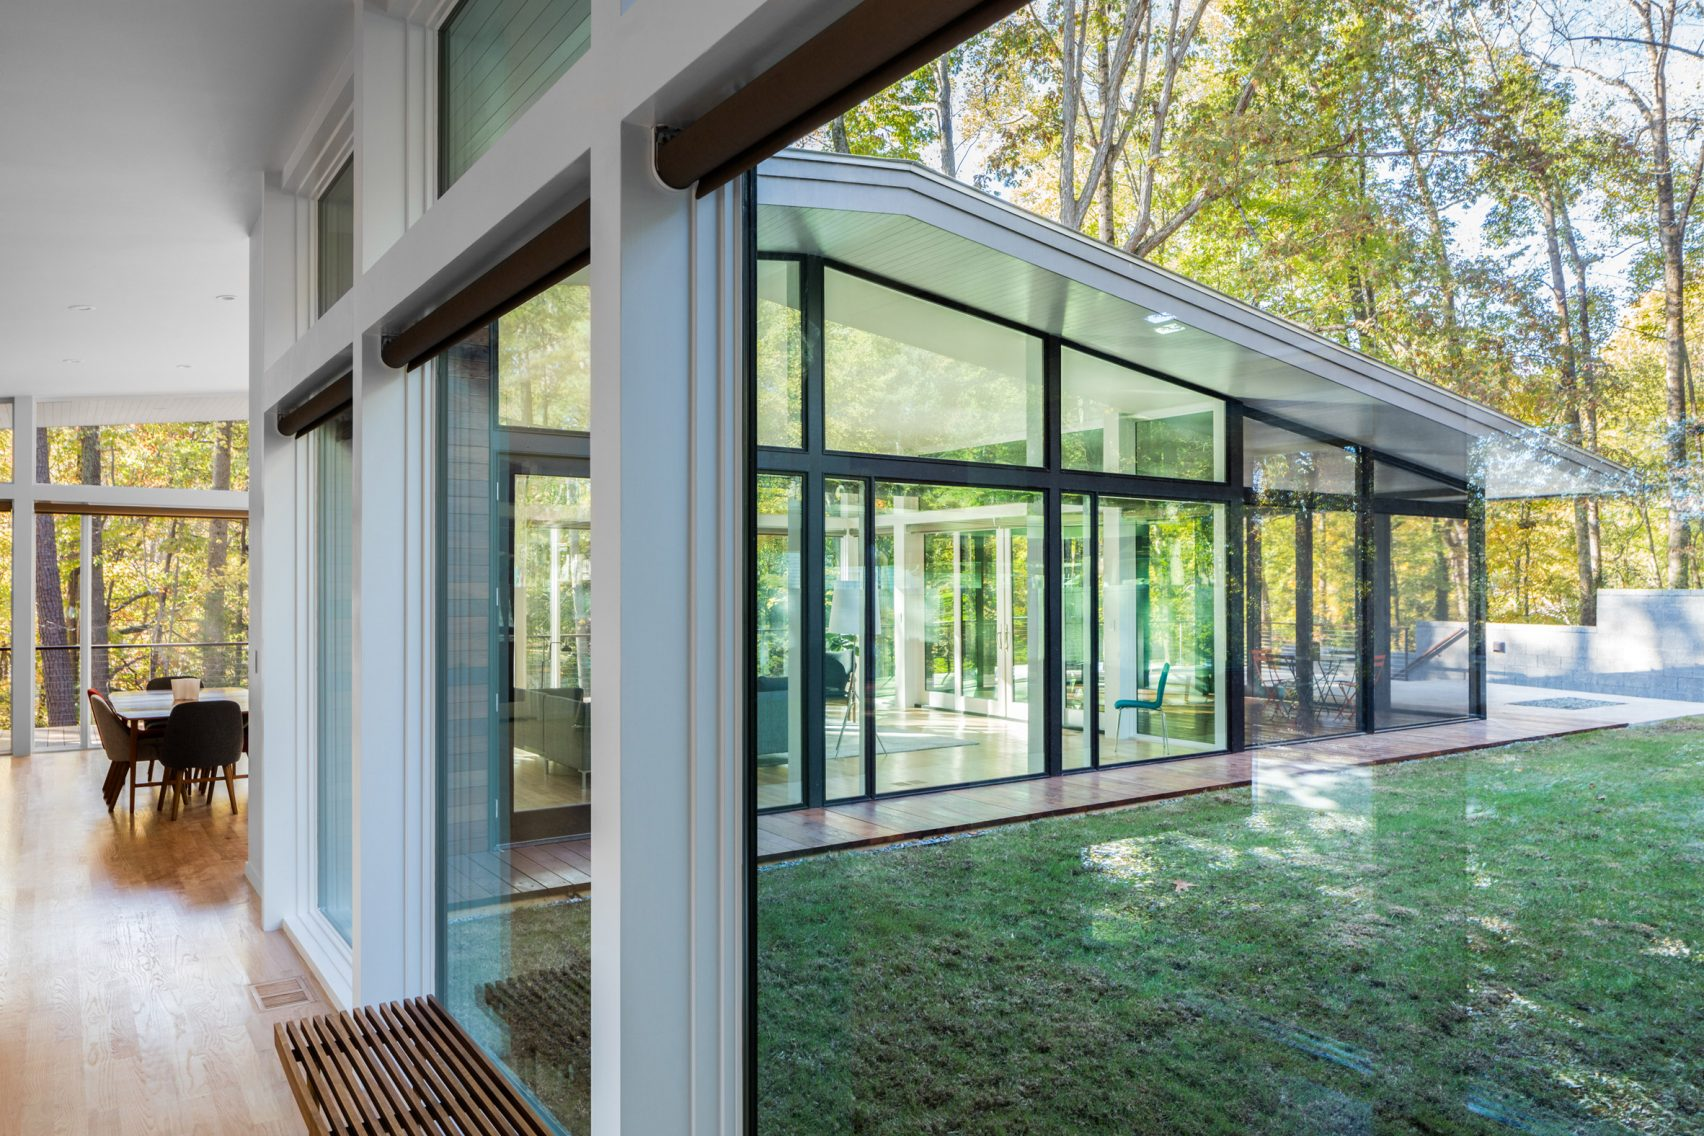 This House in North Carolina was Inspired by Mid-Century Architecture_1 mid-century architecture This House in North Carolina was Inspired by Mid-Century Architecture This House in North Carolina was Inspired by Mid Century Architecture 2